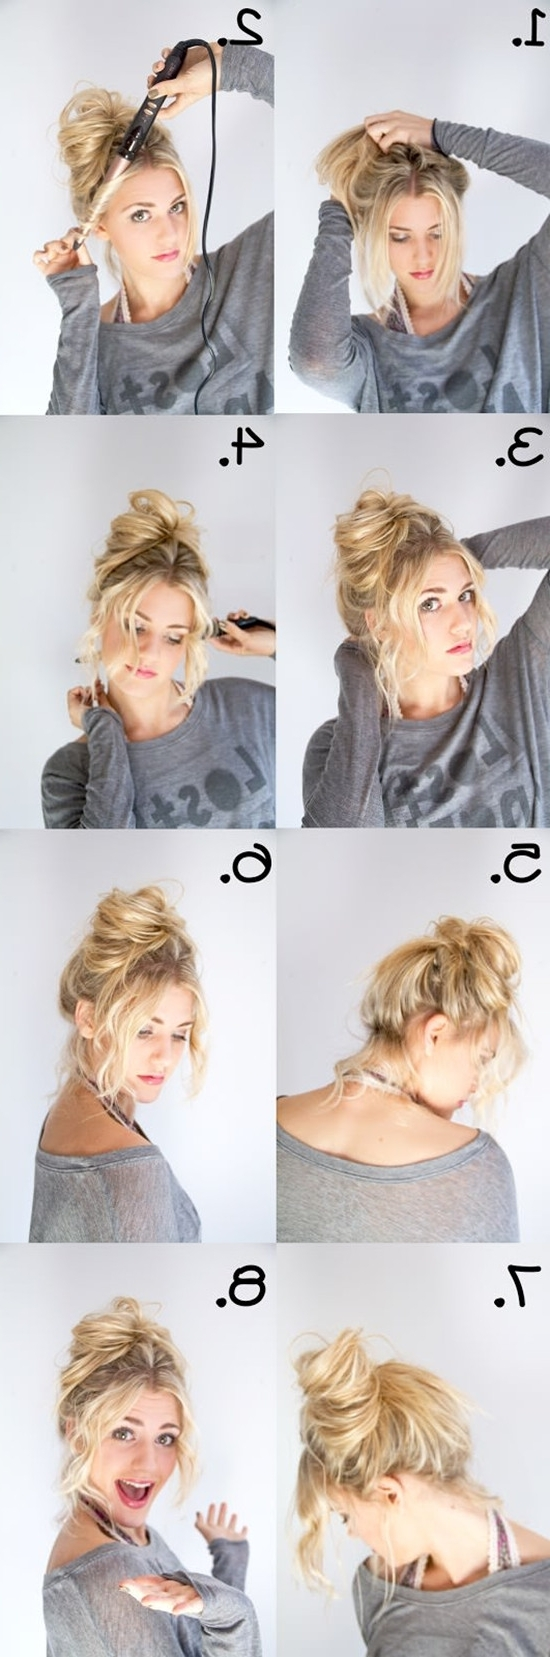 Messy Updo For Thin Hair 2018 – Forensicanth – Forensicanth Intended For Messy Updo Hairstyles For Thin Hair (View 7 of 15)